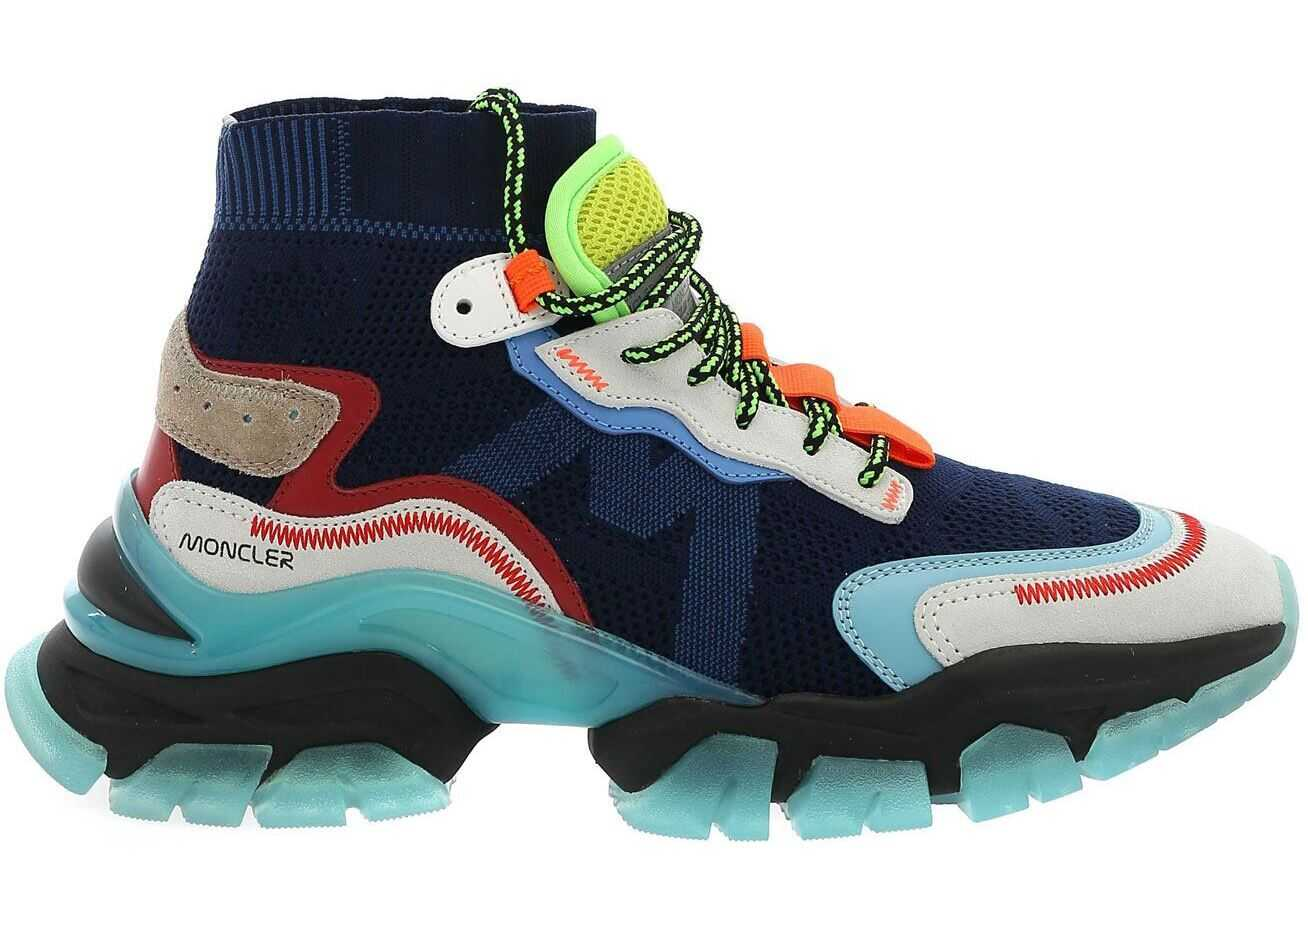 Moncler Leave No Trace High Sneakers In Blue Blue